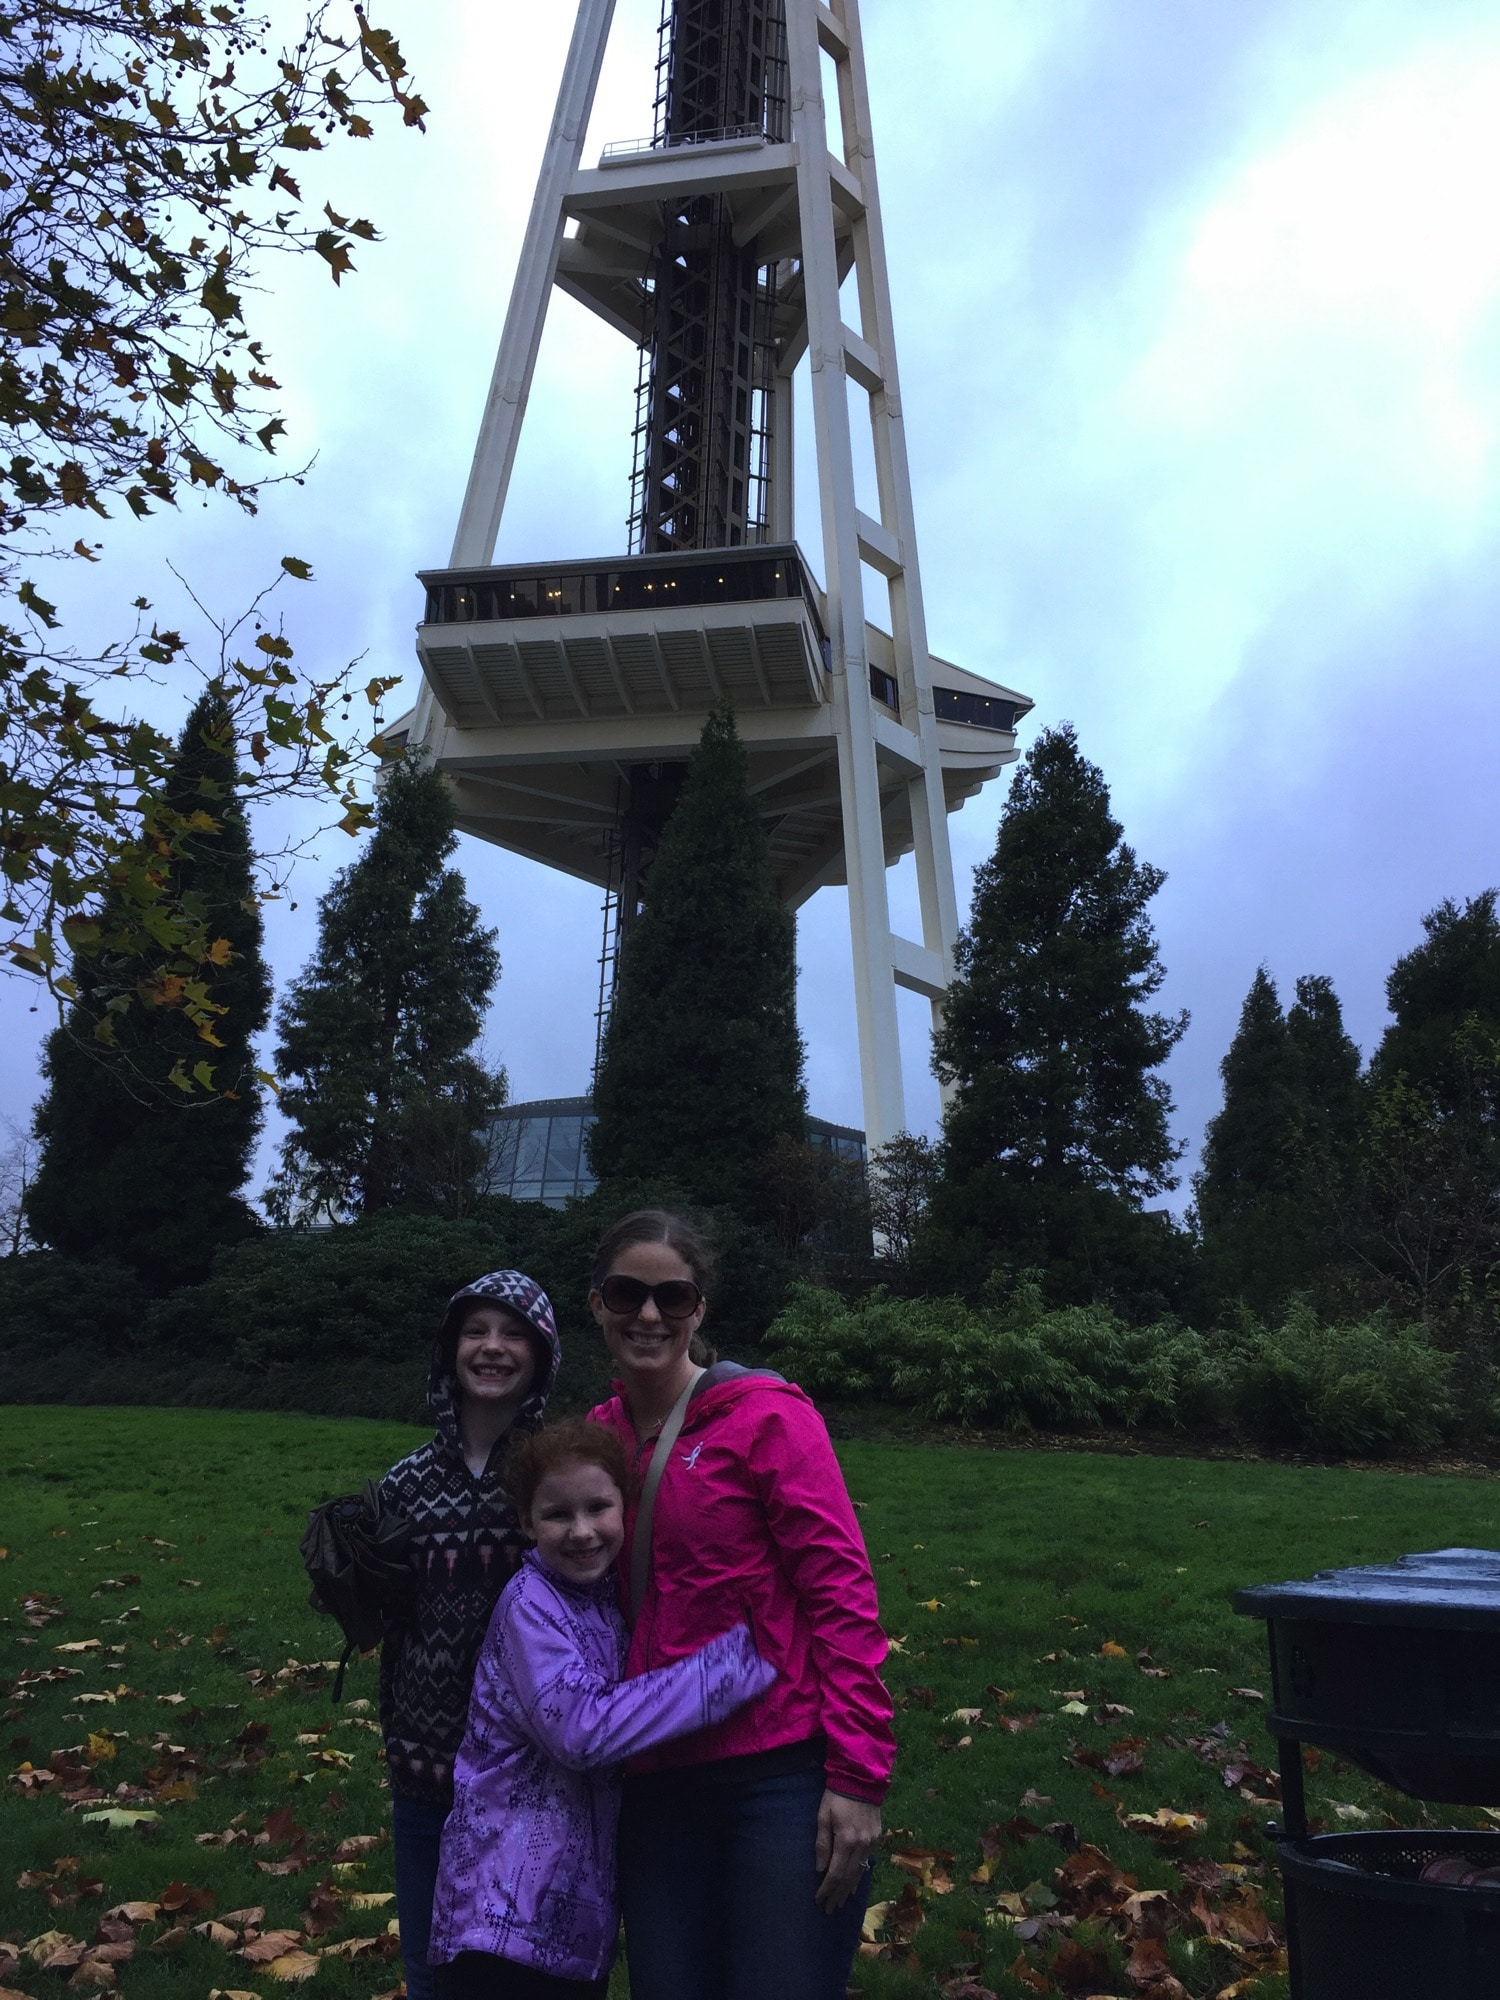 At the Space Needle